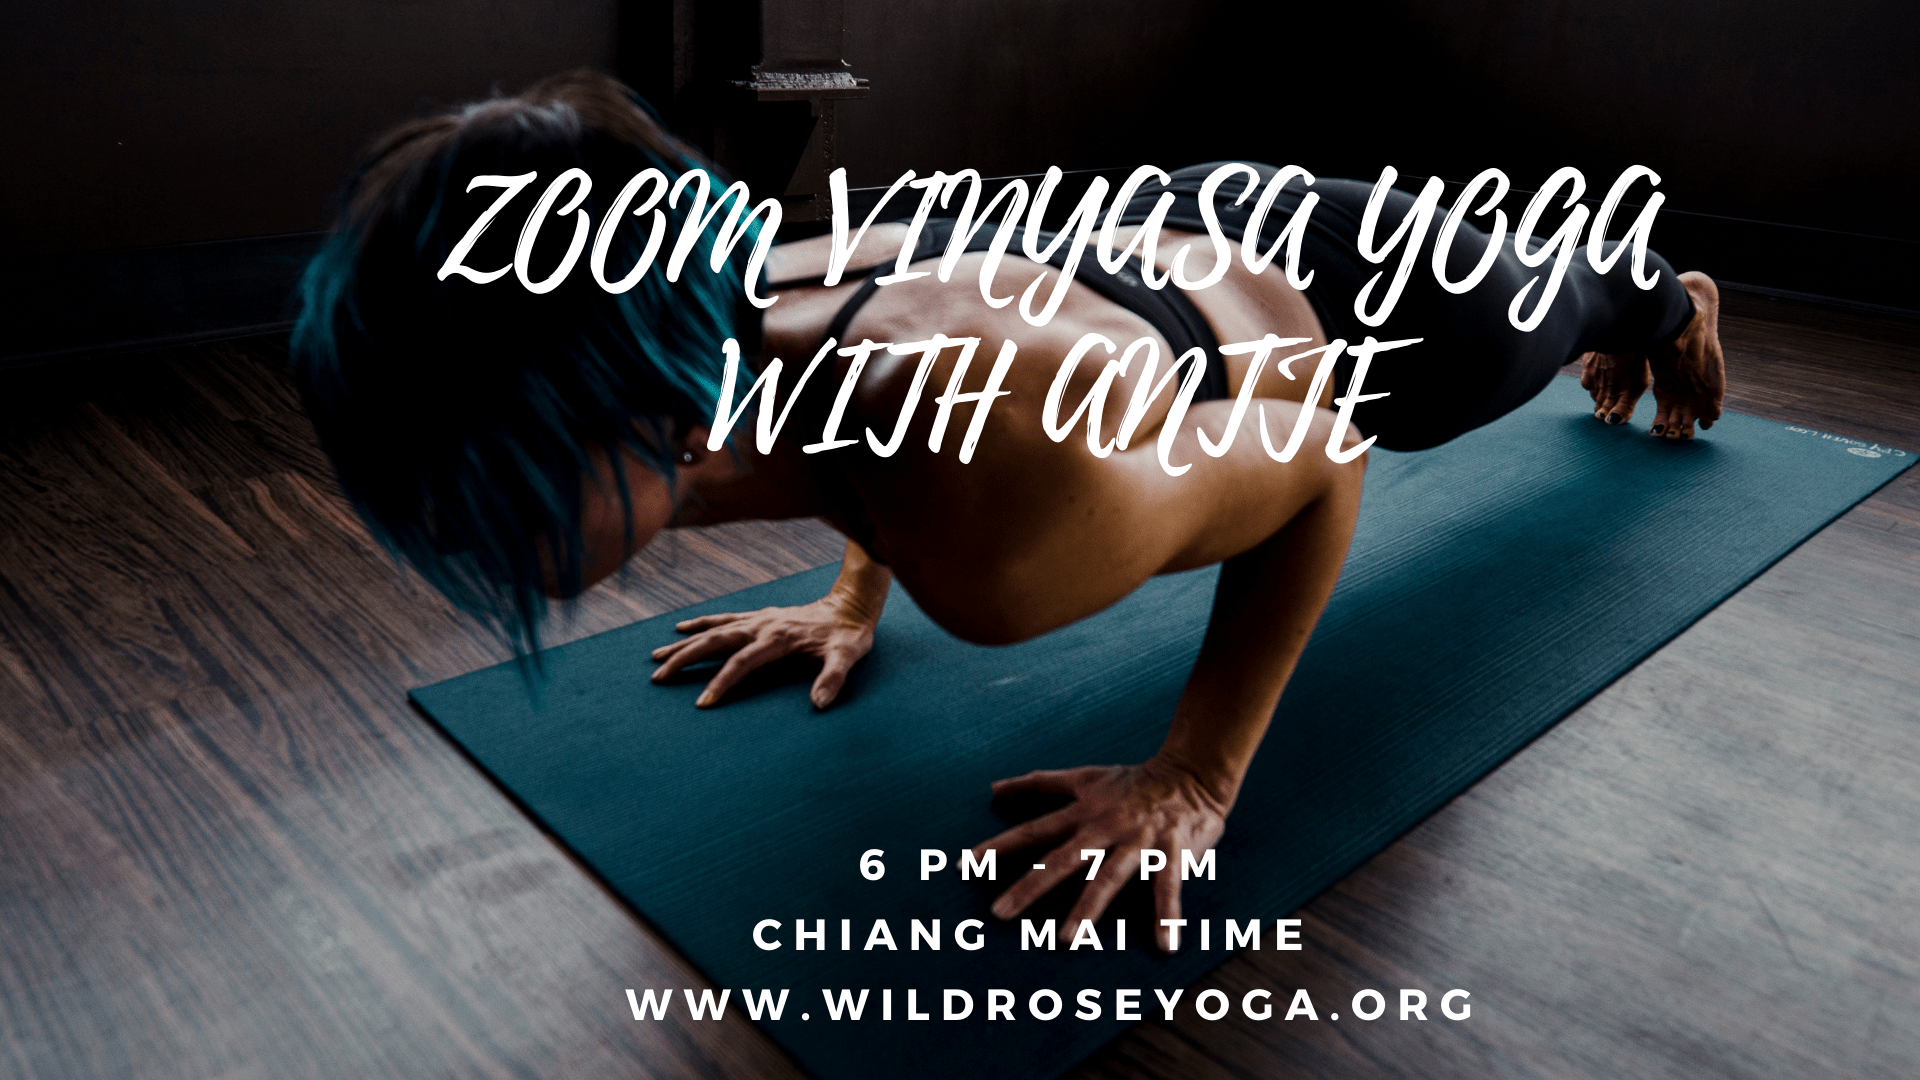 ZOOM LIVE STREAM VINYASA YOGA FLOW with Antje